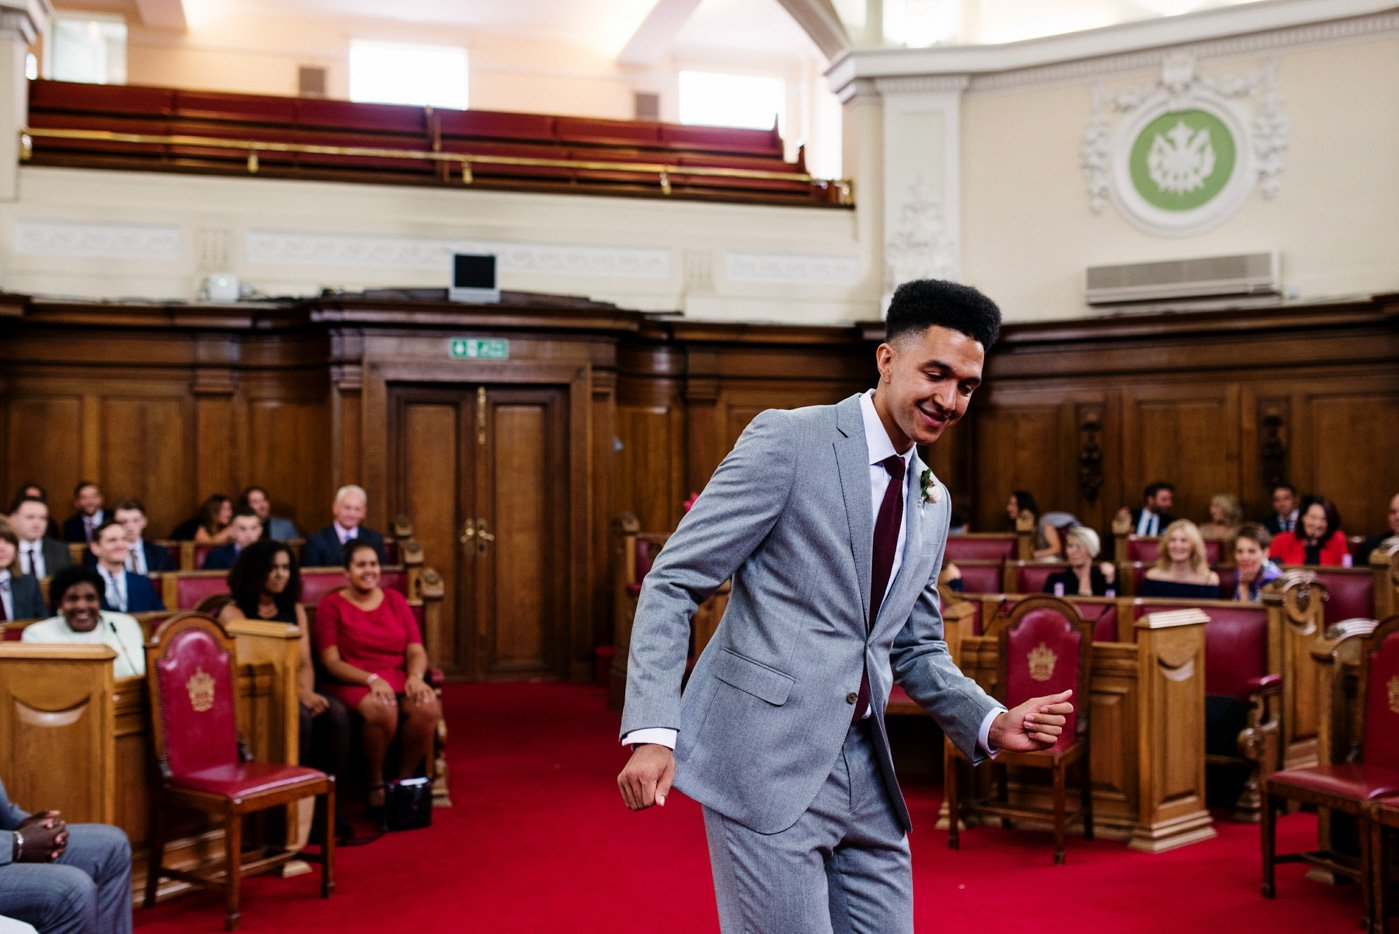 Alternative groom dancing pre wedding Islington Town Hall